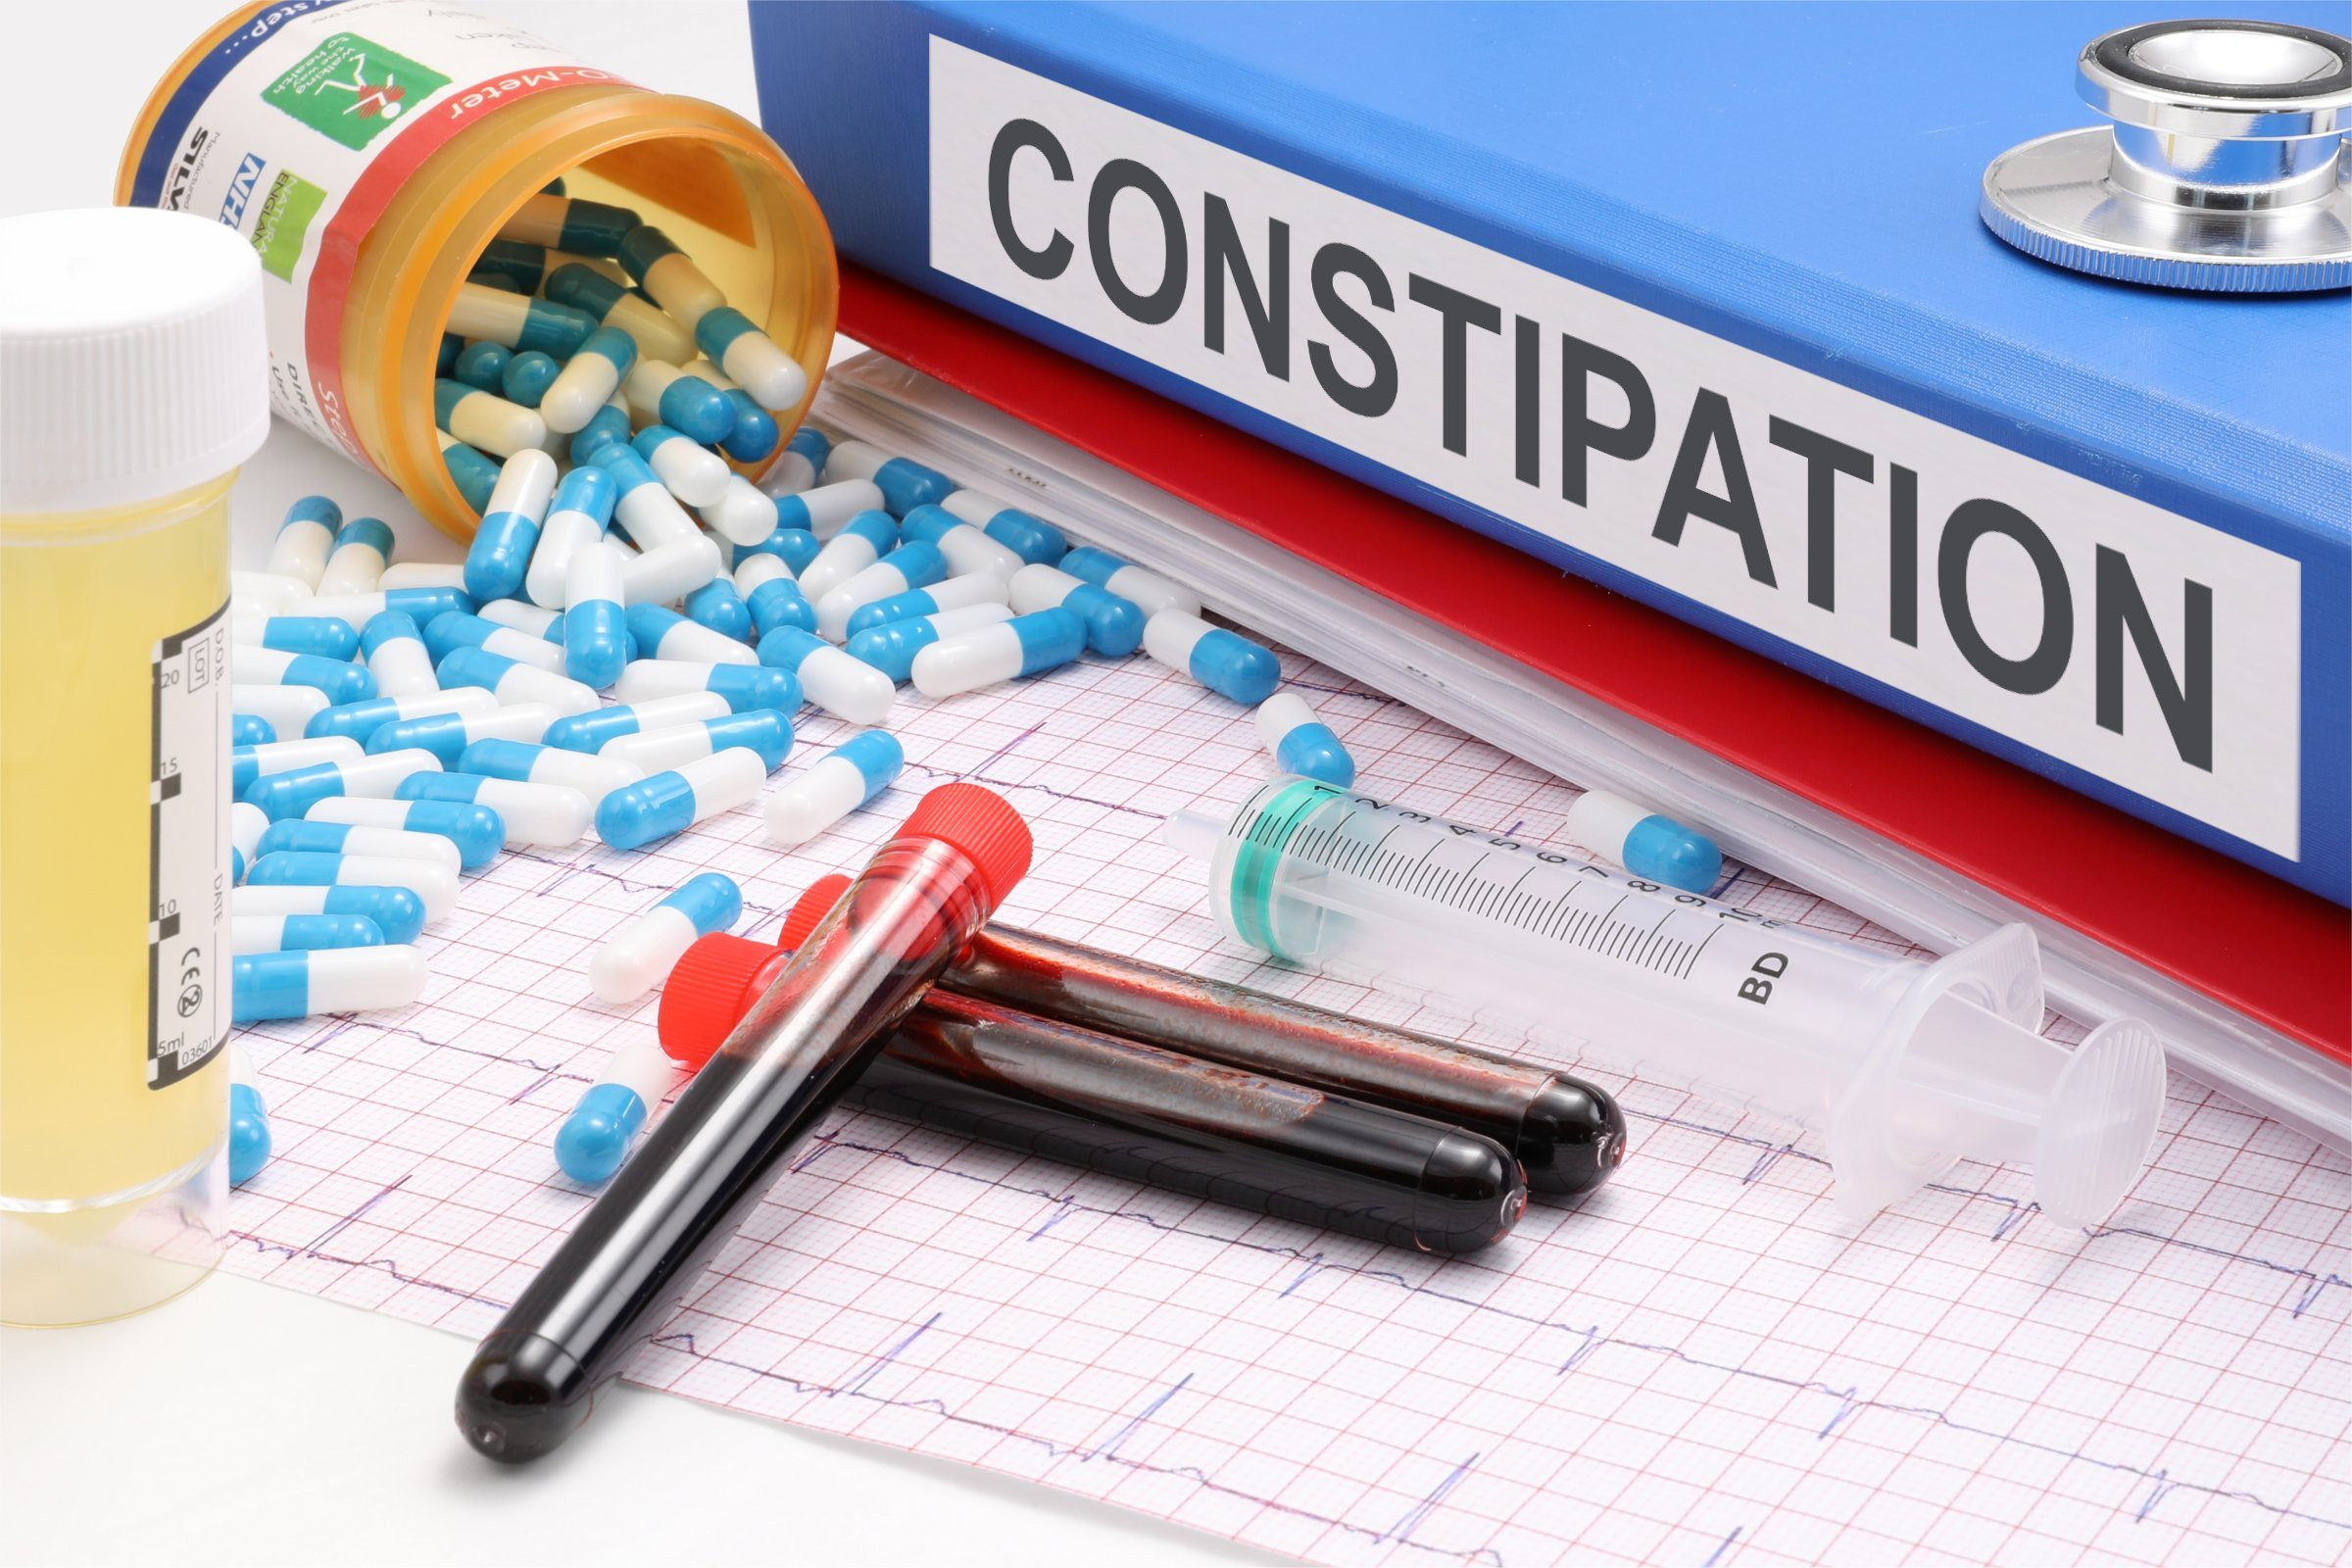 Difference Between Constipation and Cramping